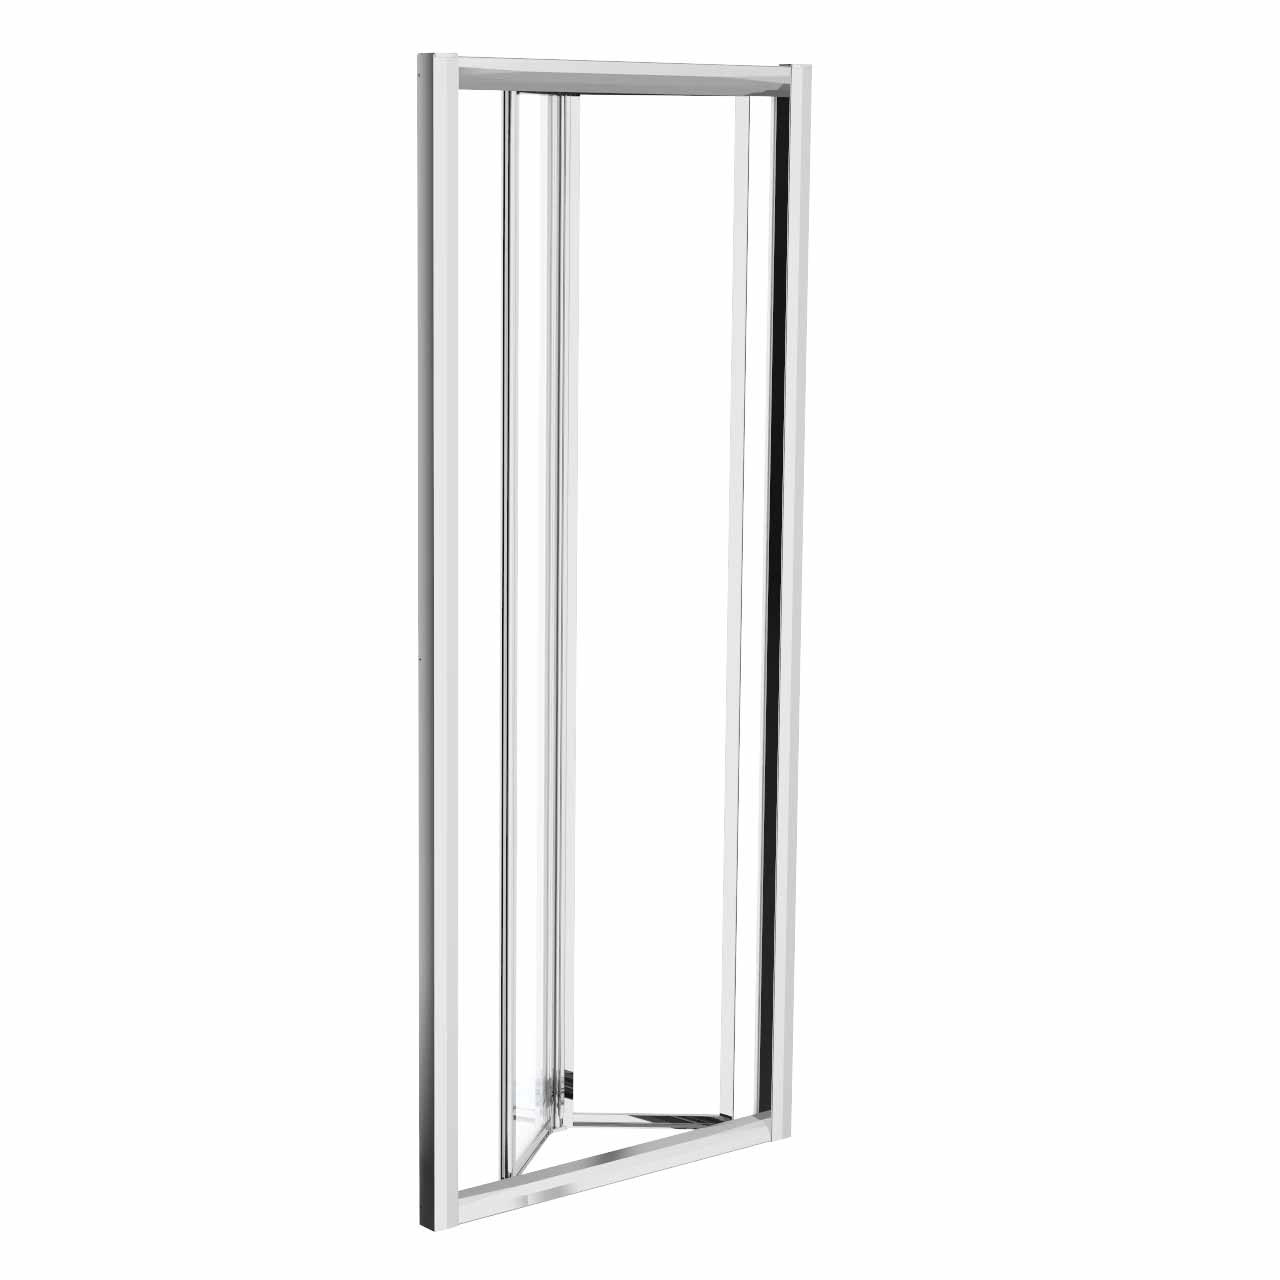 Series 6 800 x 900 Bi Fold Door Enclosure